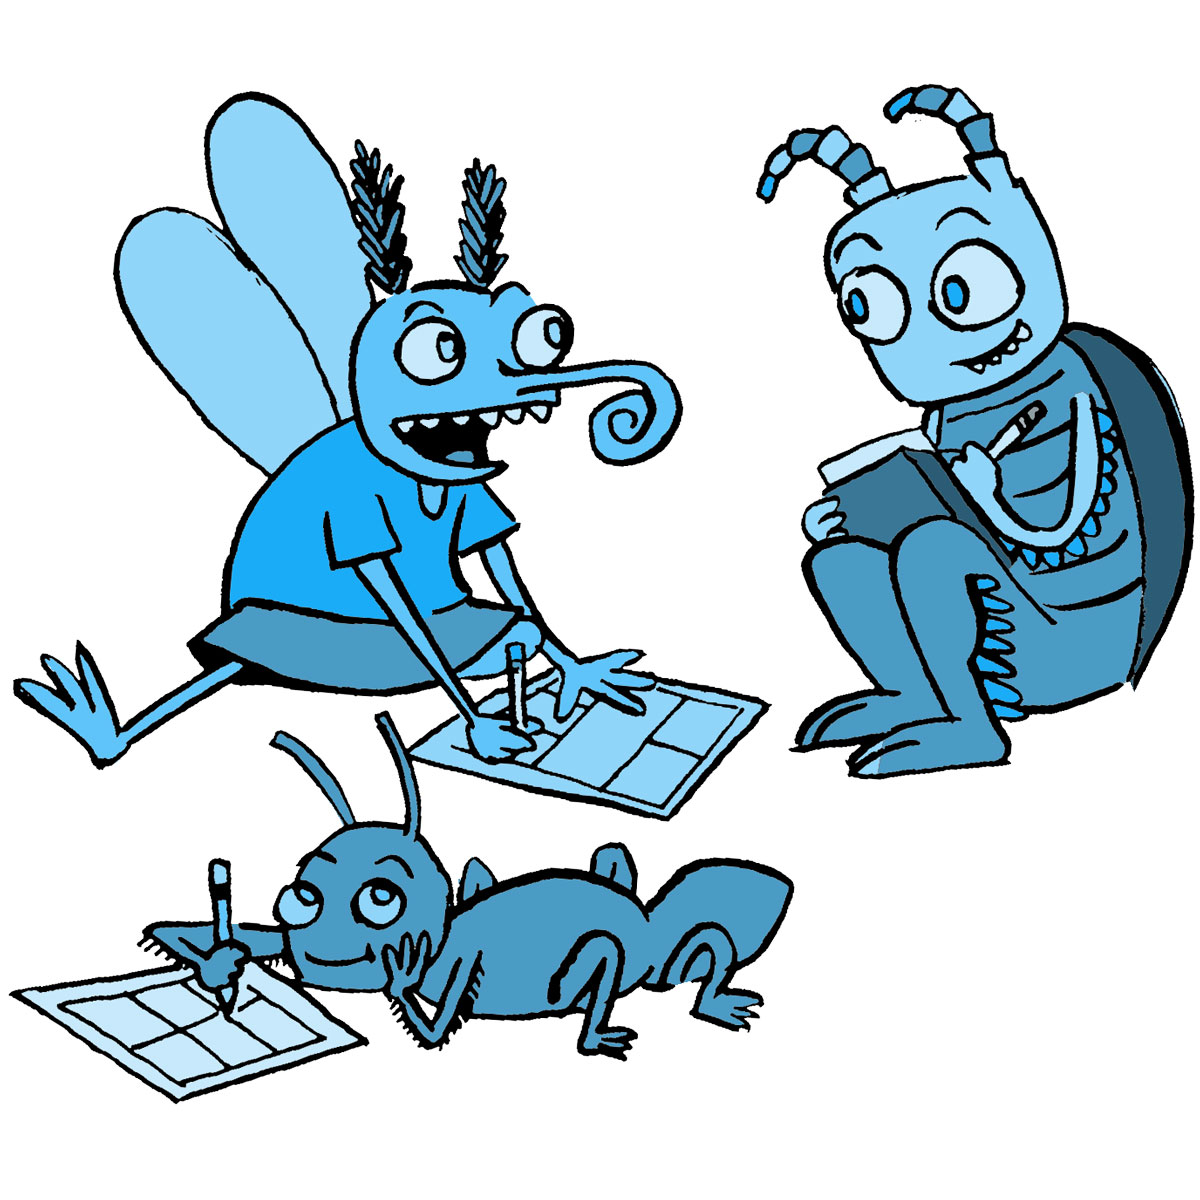 insects drawing comics together and chatting